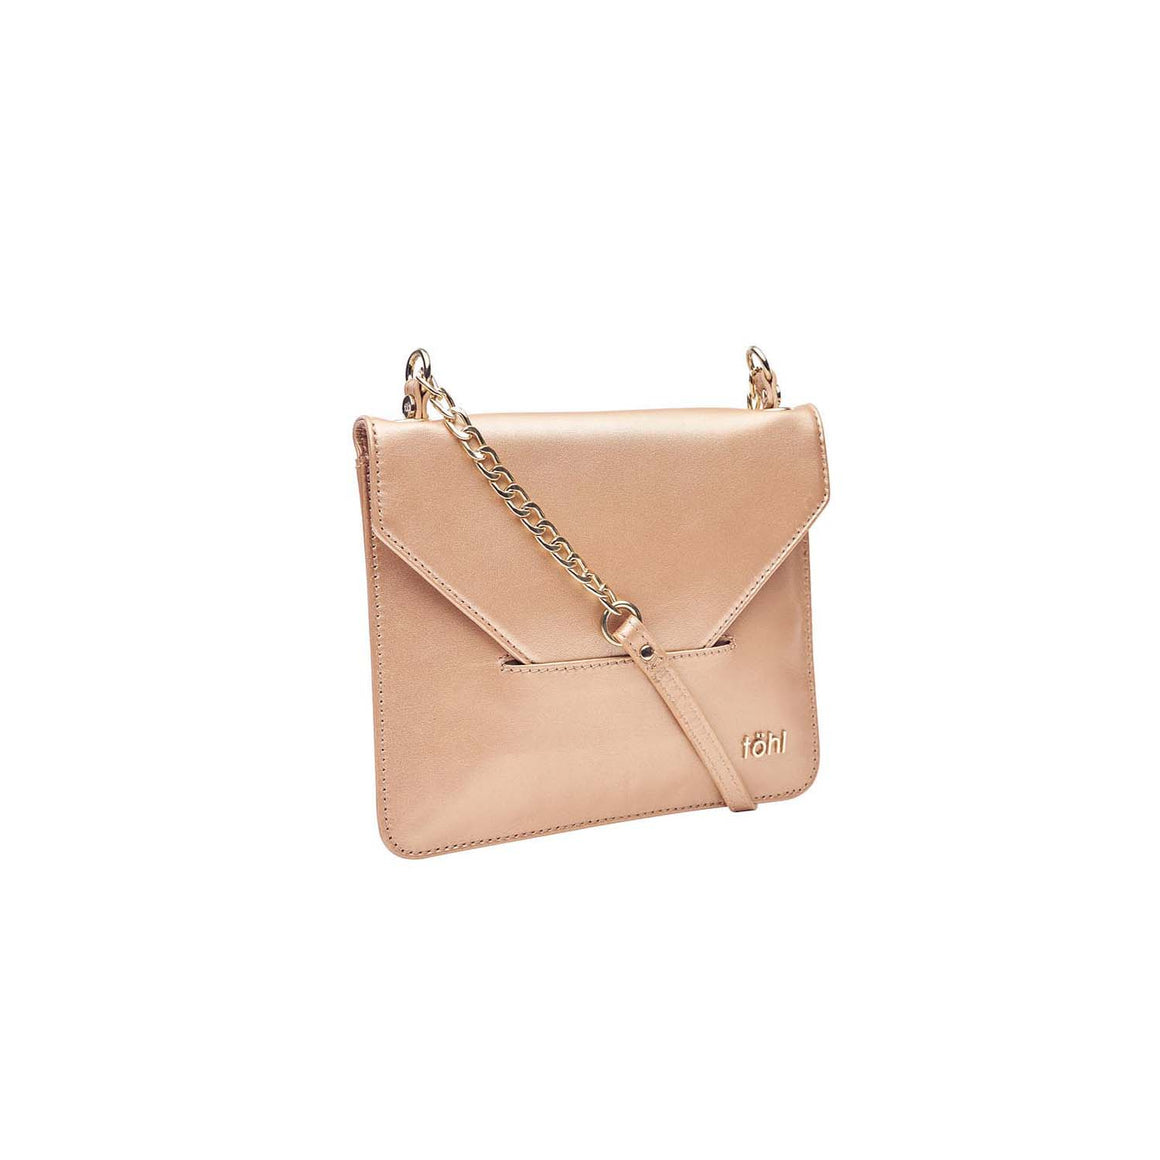 SG 0029 - TOHL ANNADALE WOMEN'S SLING & CROSSBODY BAG - METALLIC NUDE